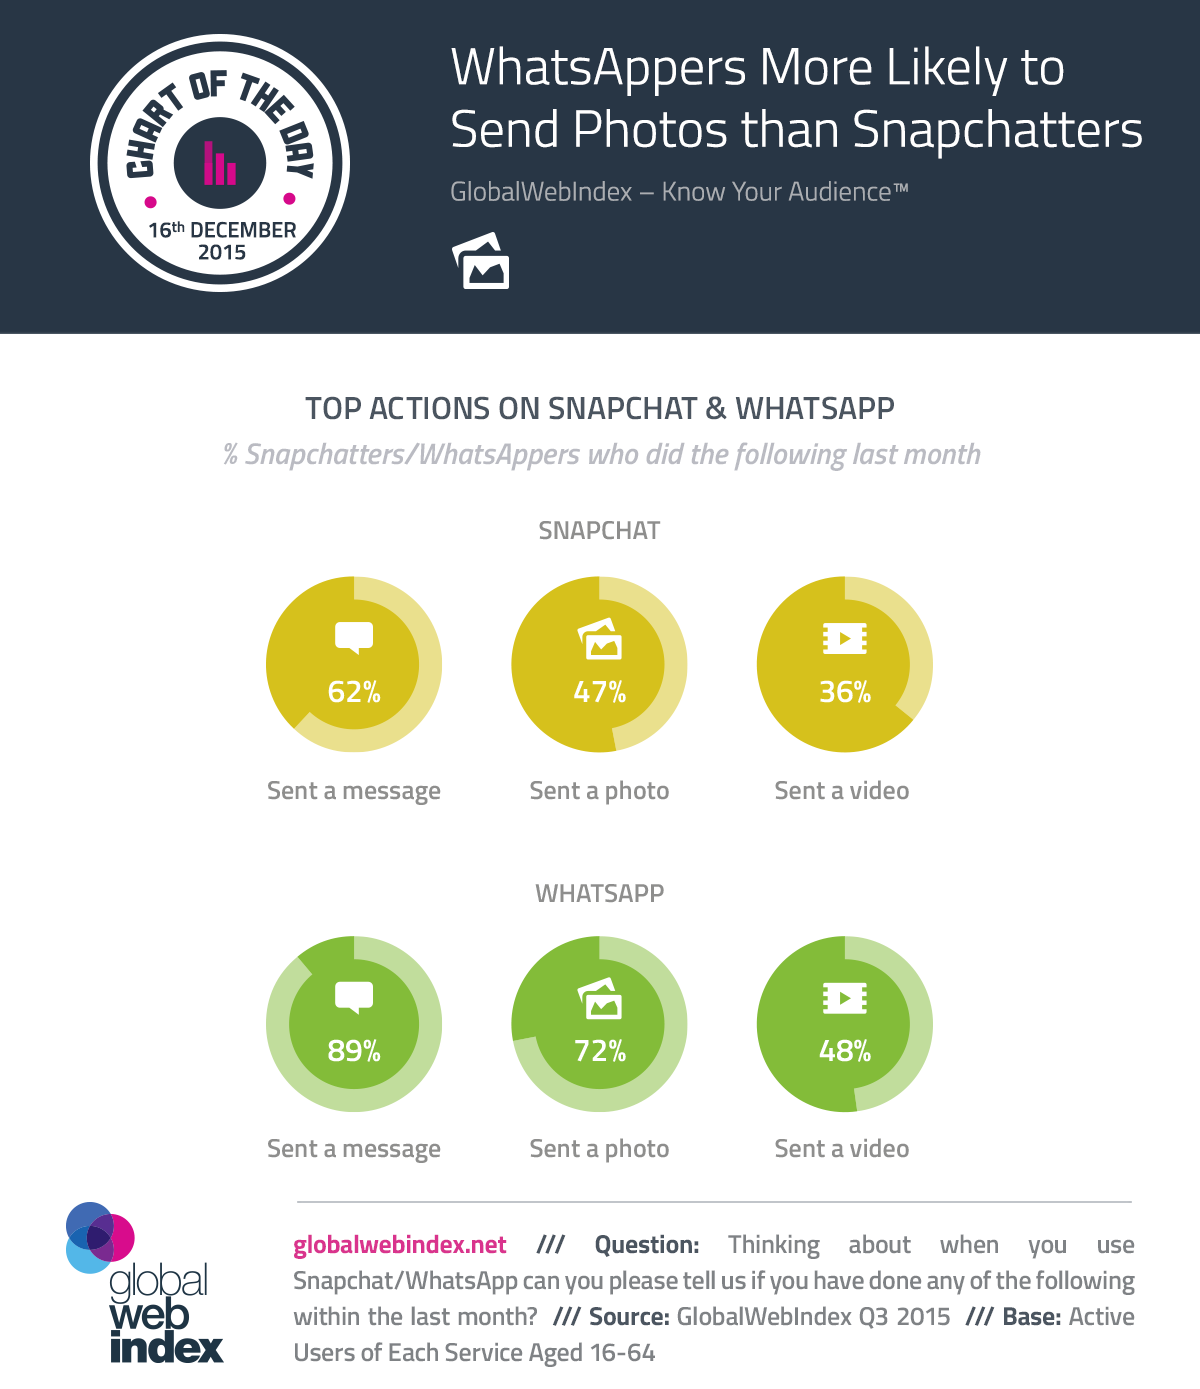 COTD-Charts-16-Dec-2015-WhatsAppers-More-Likely-to-Send-Photos-than-Snapchatters.png